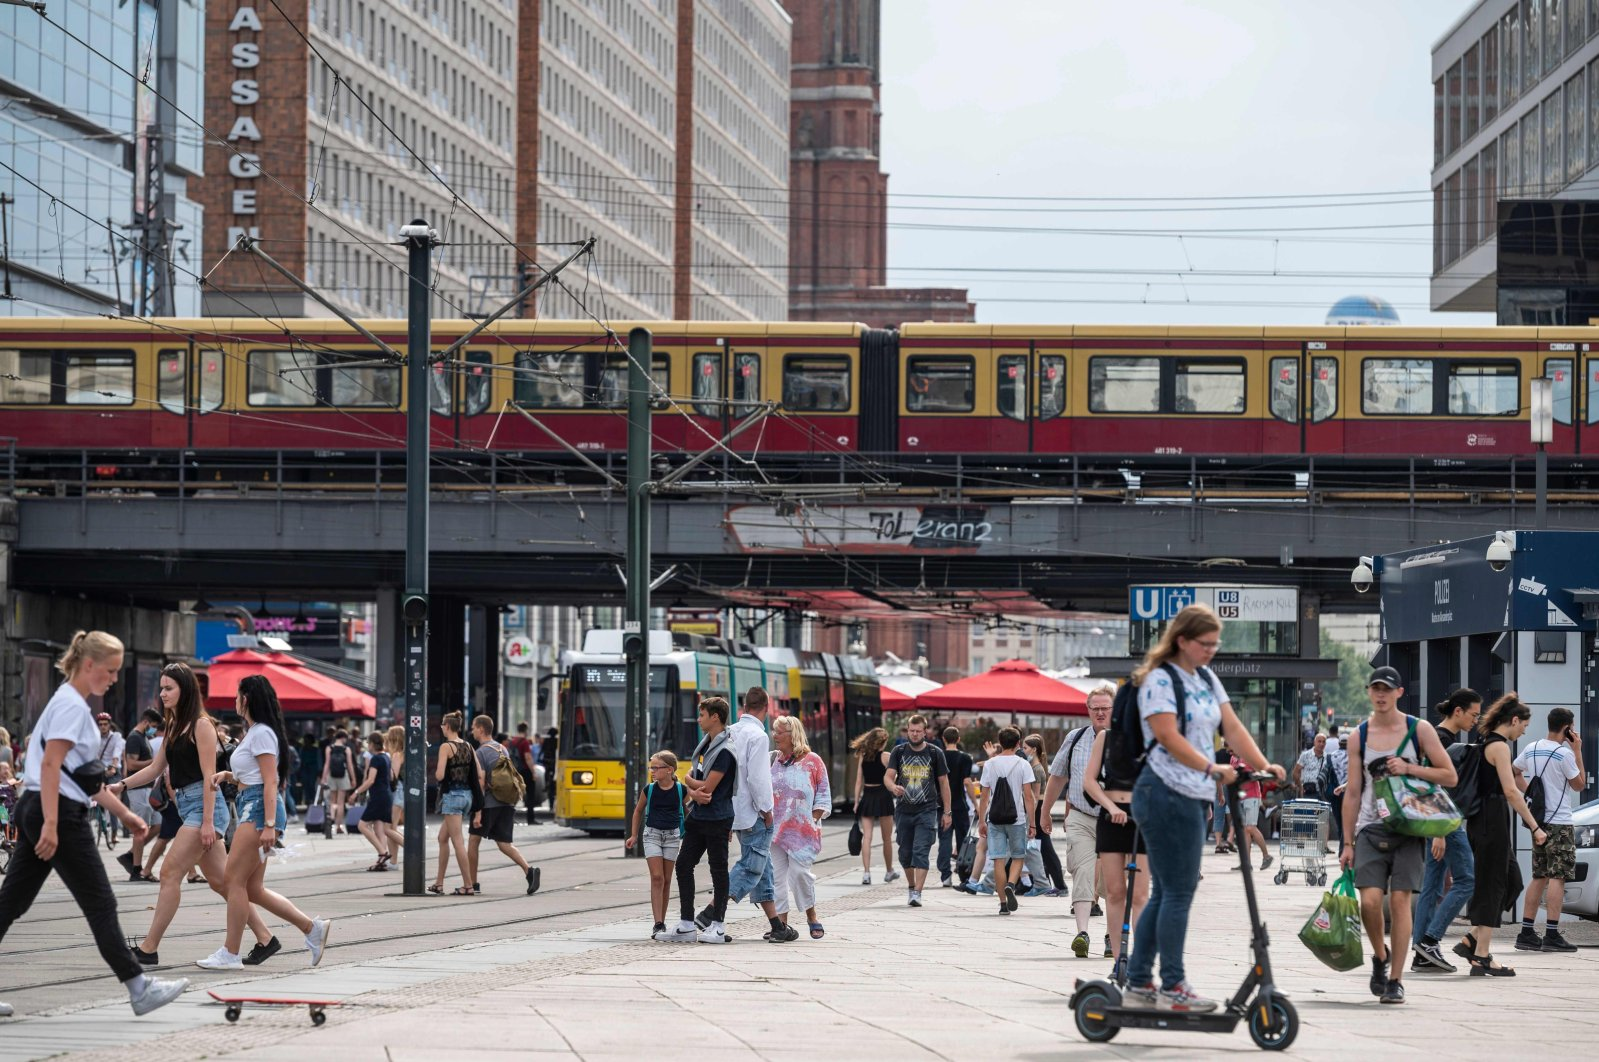 Crowds gather in Berlin's central shopping district of Alexanderplatz on August 14, 2020, amid a Coronavirus COVID-19 pandemic. (AFP Photo)